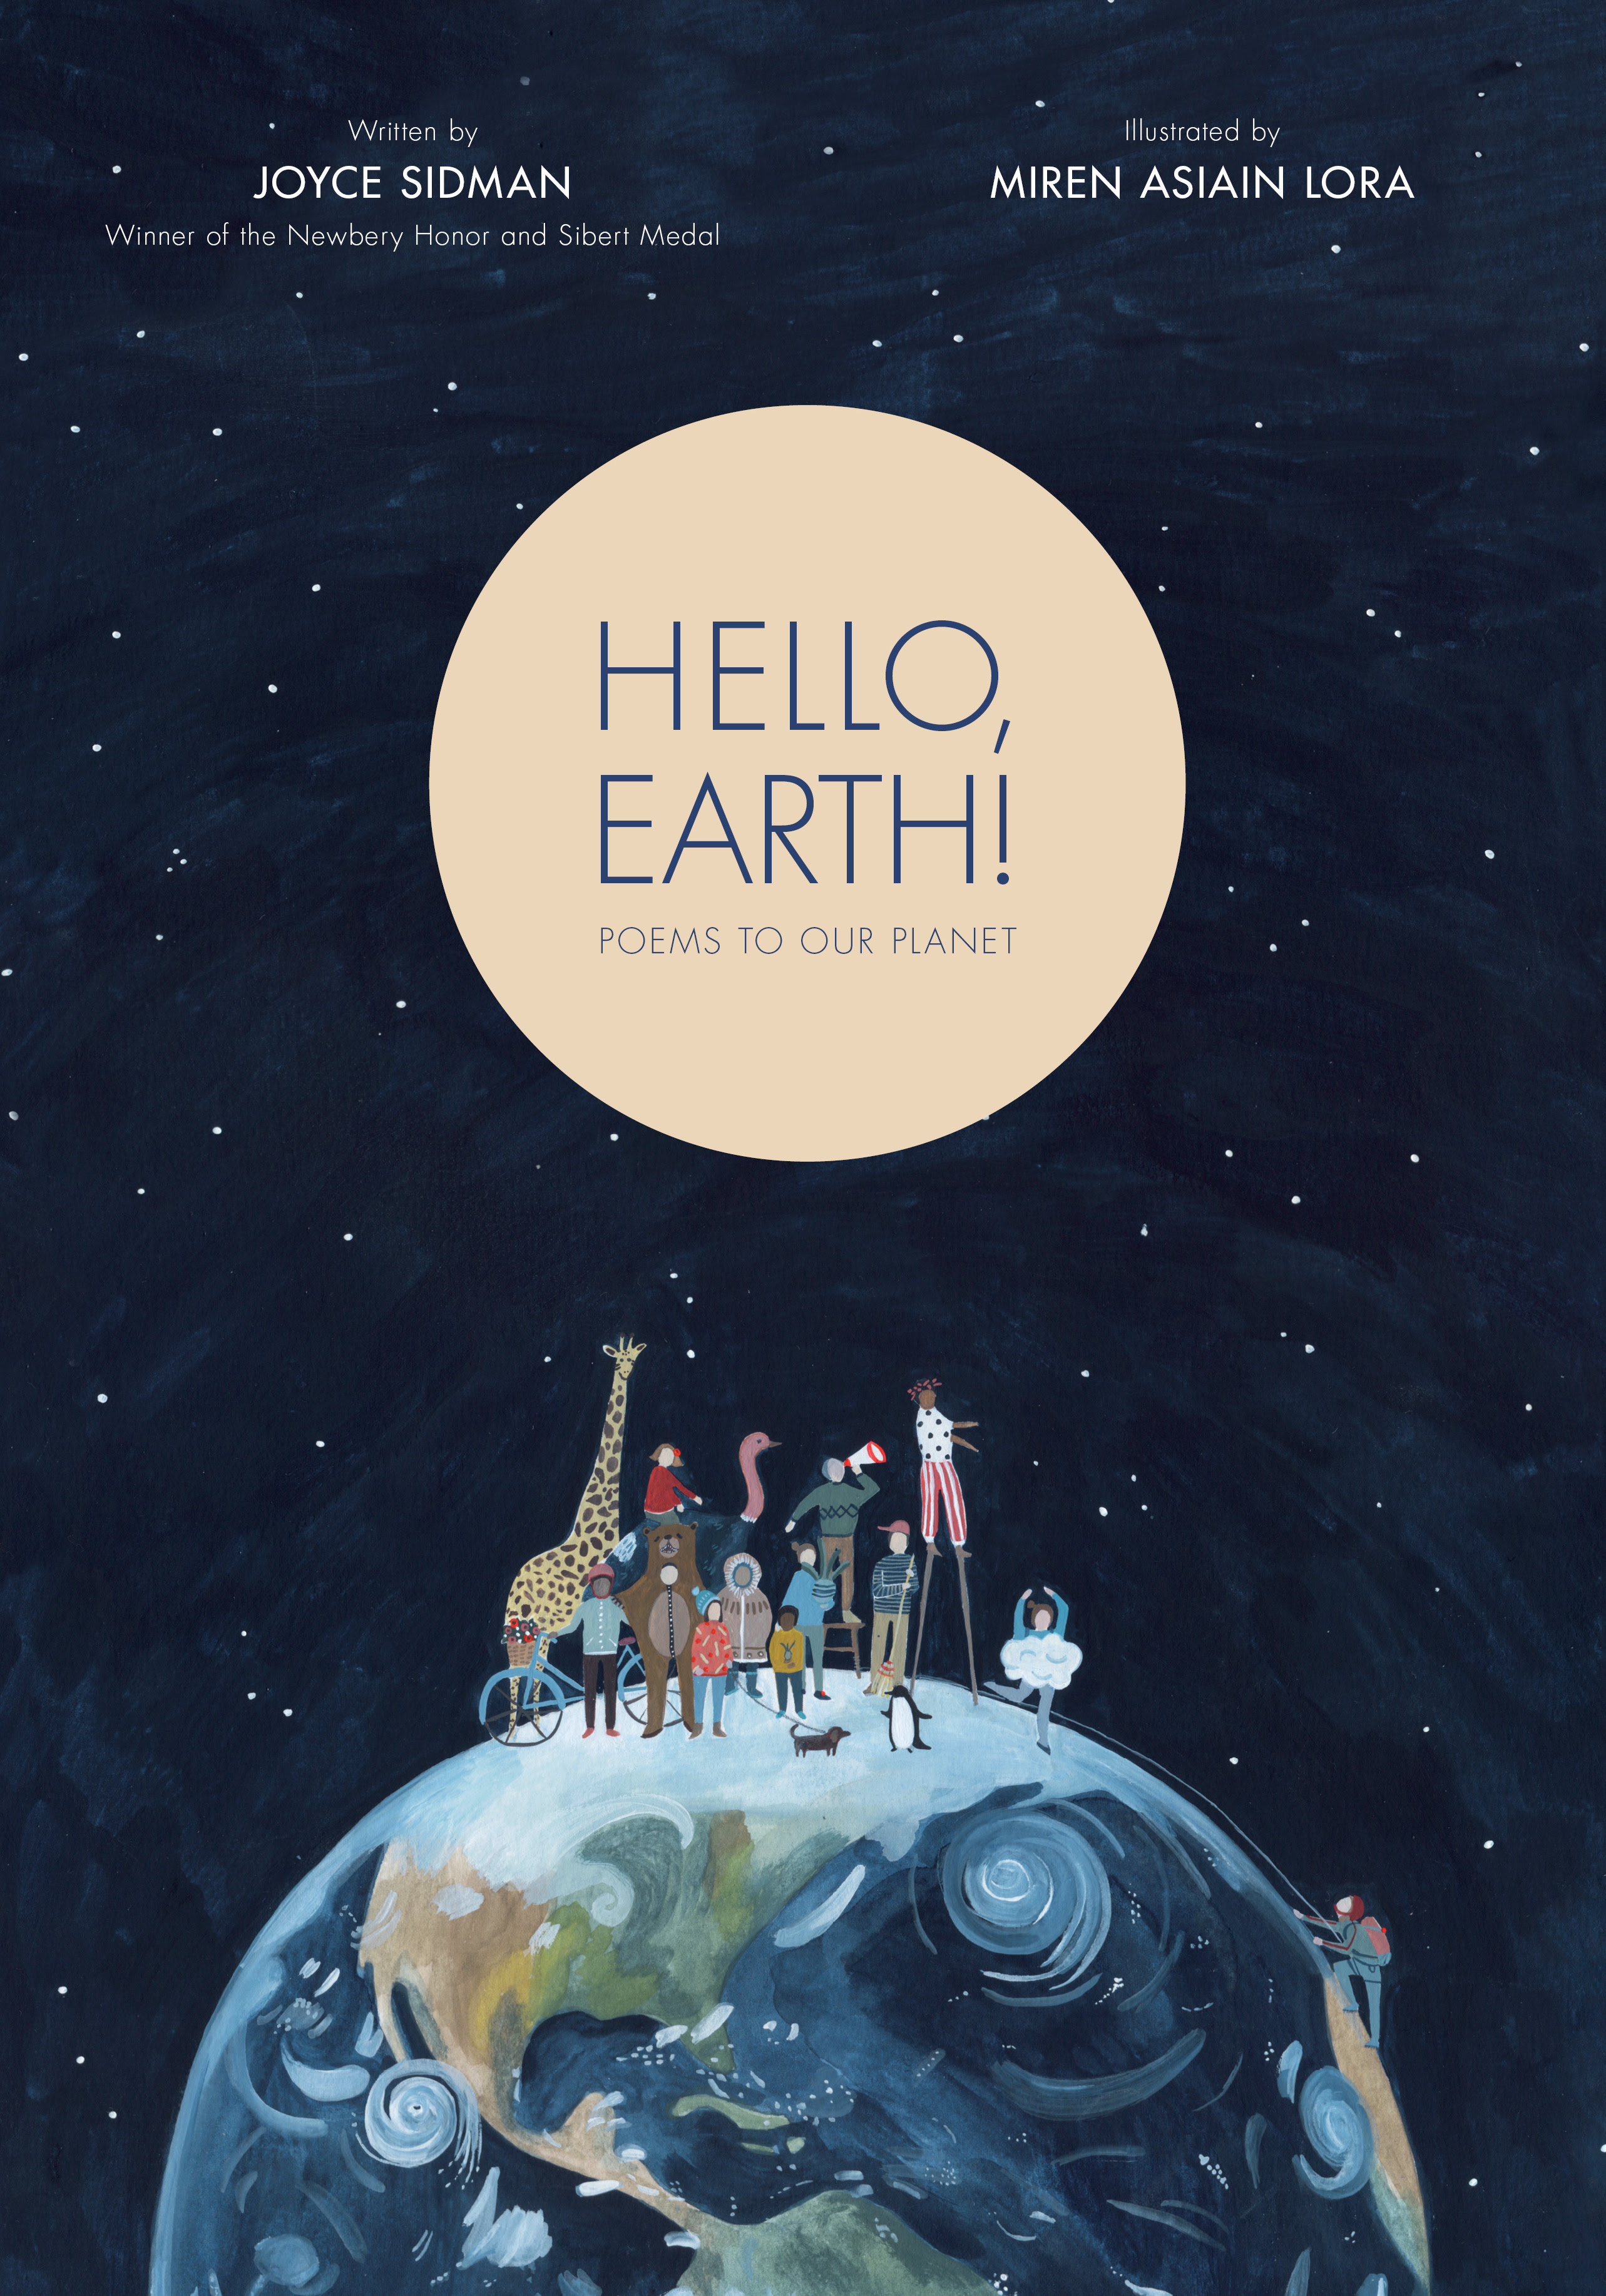 Hello, Earth! Poems to Our Planet - MIREN ASIAIN LORA ...